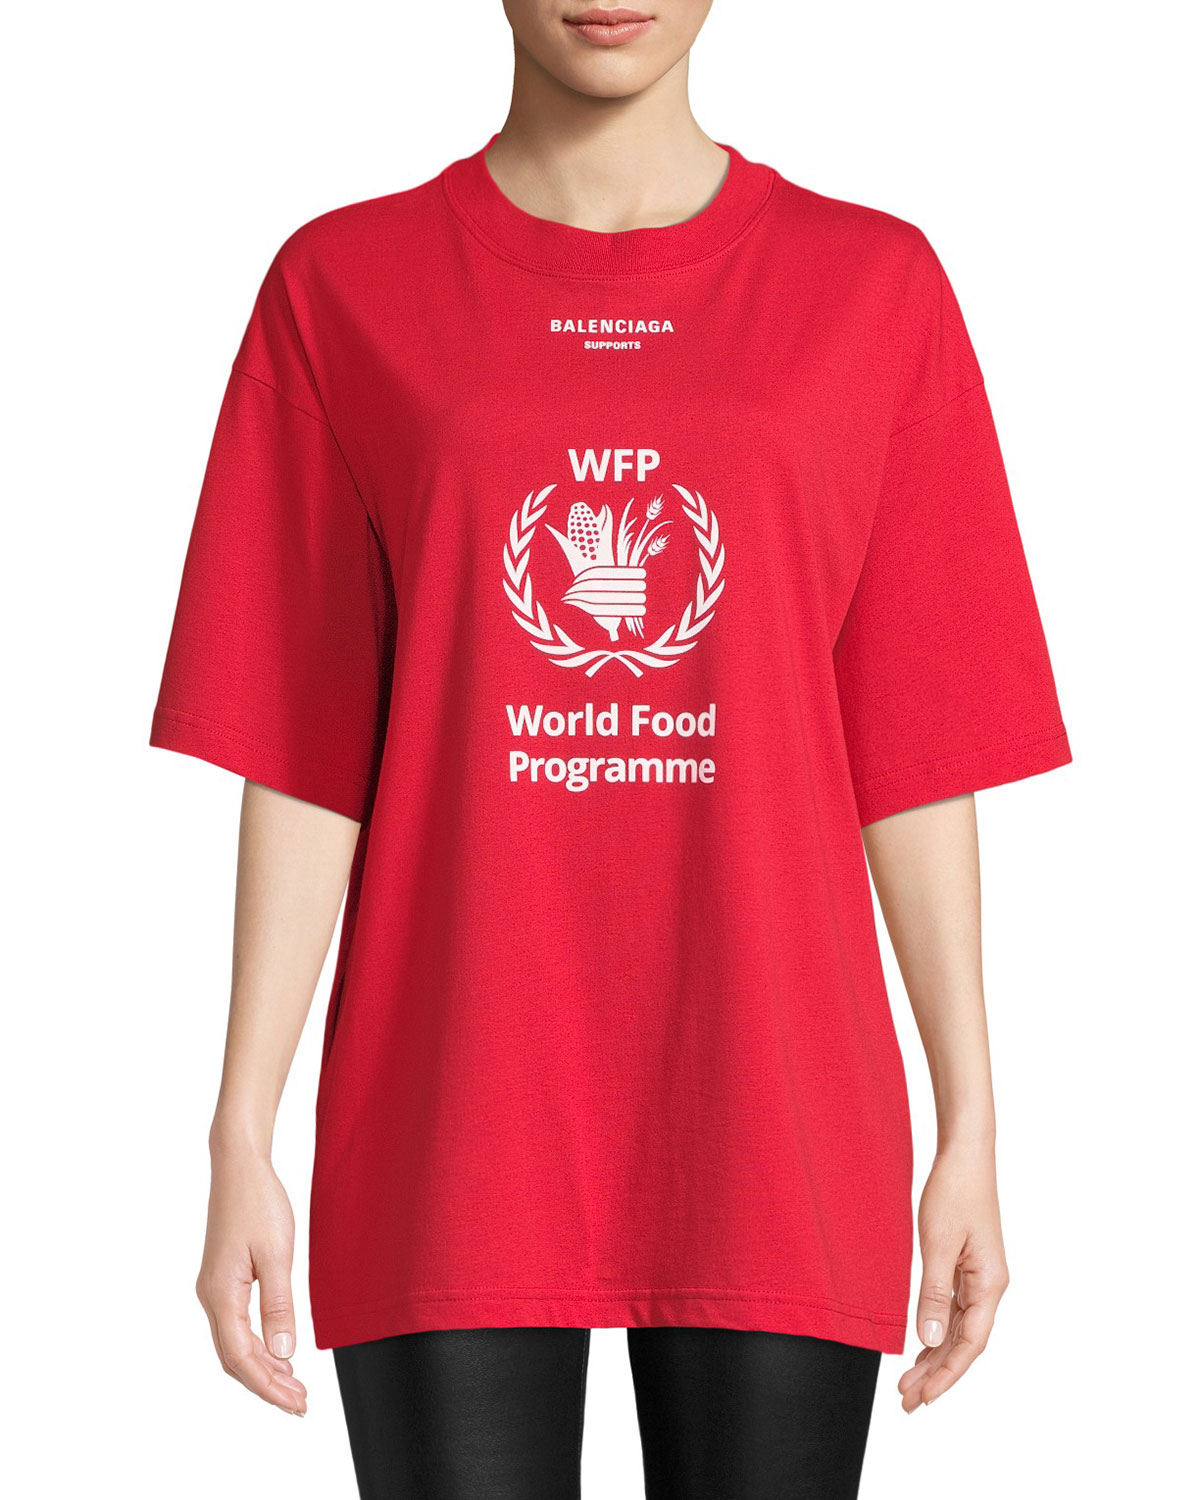 Balenciaga World Food Programme Graphic Tee Bergdorf Goodman